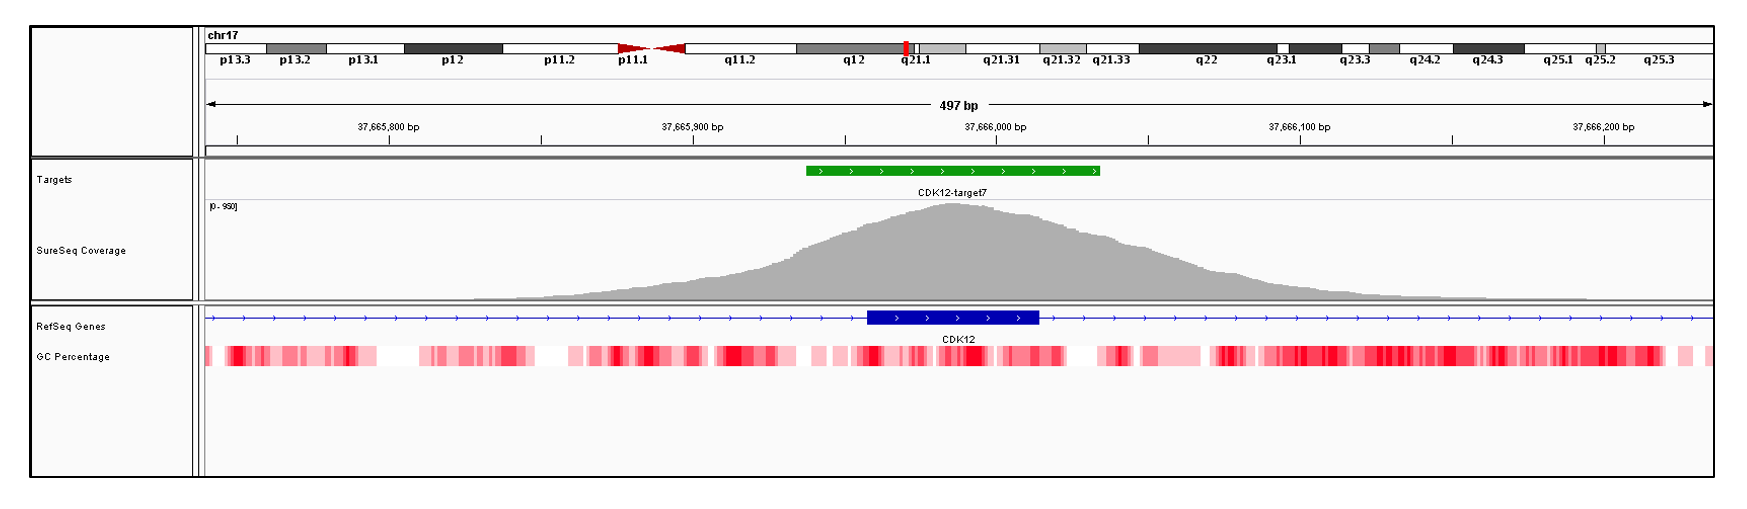 CDK12 Exon 7 (hg19 chr17:37665958-37666014). Depth of coverage per base (grey). Targeted region (green). Gene coding region as defined by RefSeq (blue). GC percentage (red). Image